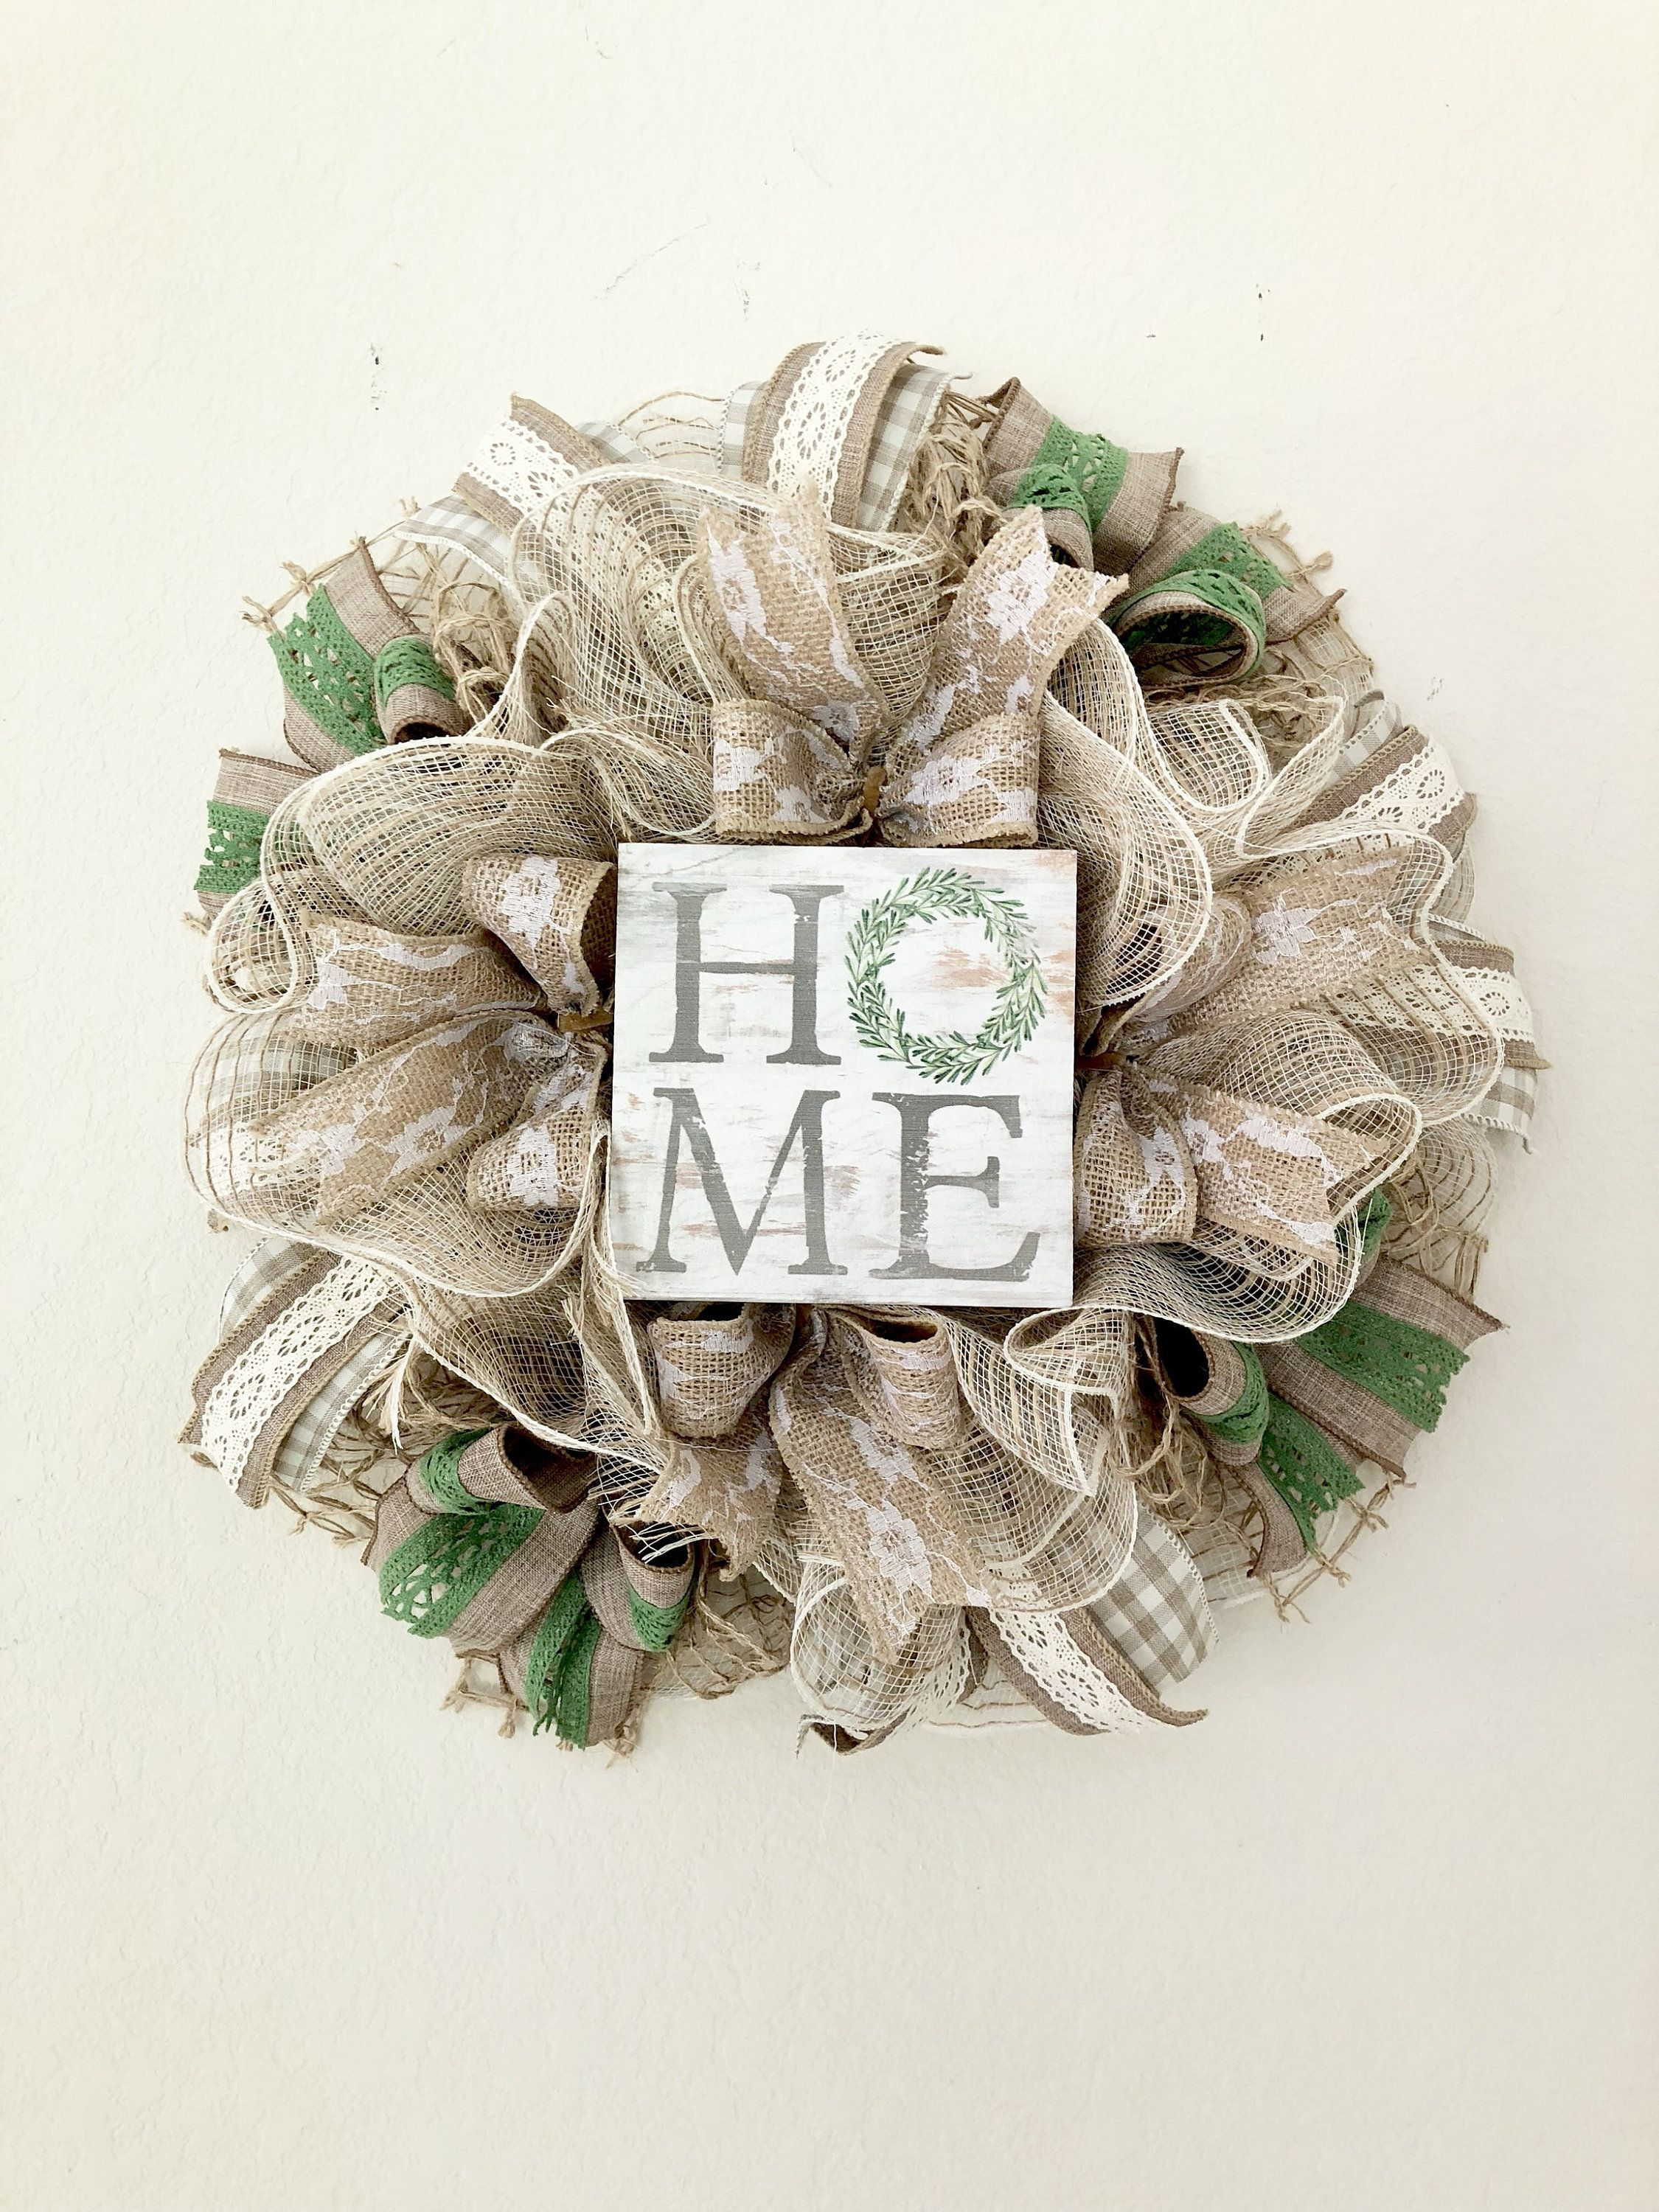 Mini Wreath,Small Size Wreath,Deco Mesh Wreath,Natural Wreath,Home Wreath,Classy Wreath,Everyday Wreath,Front